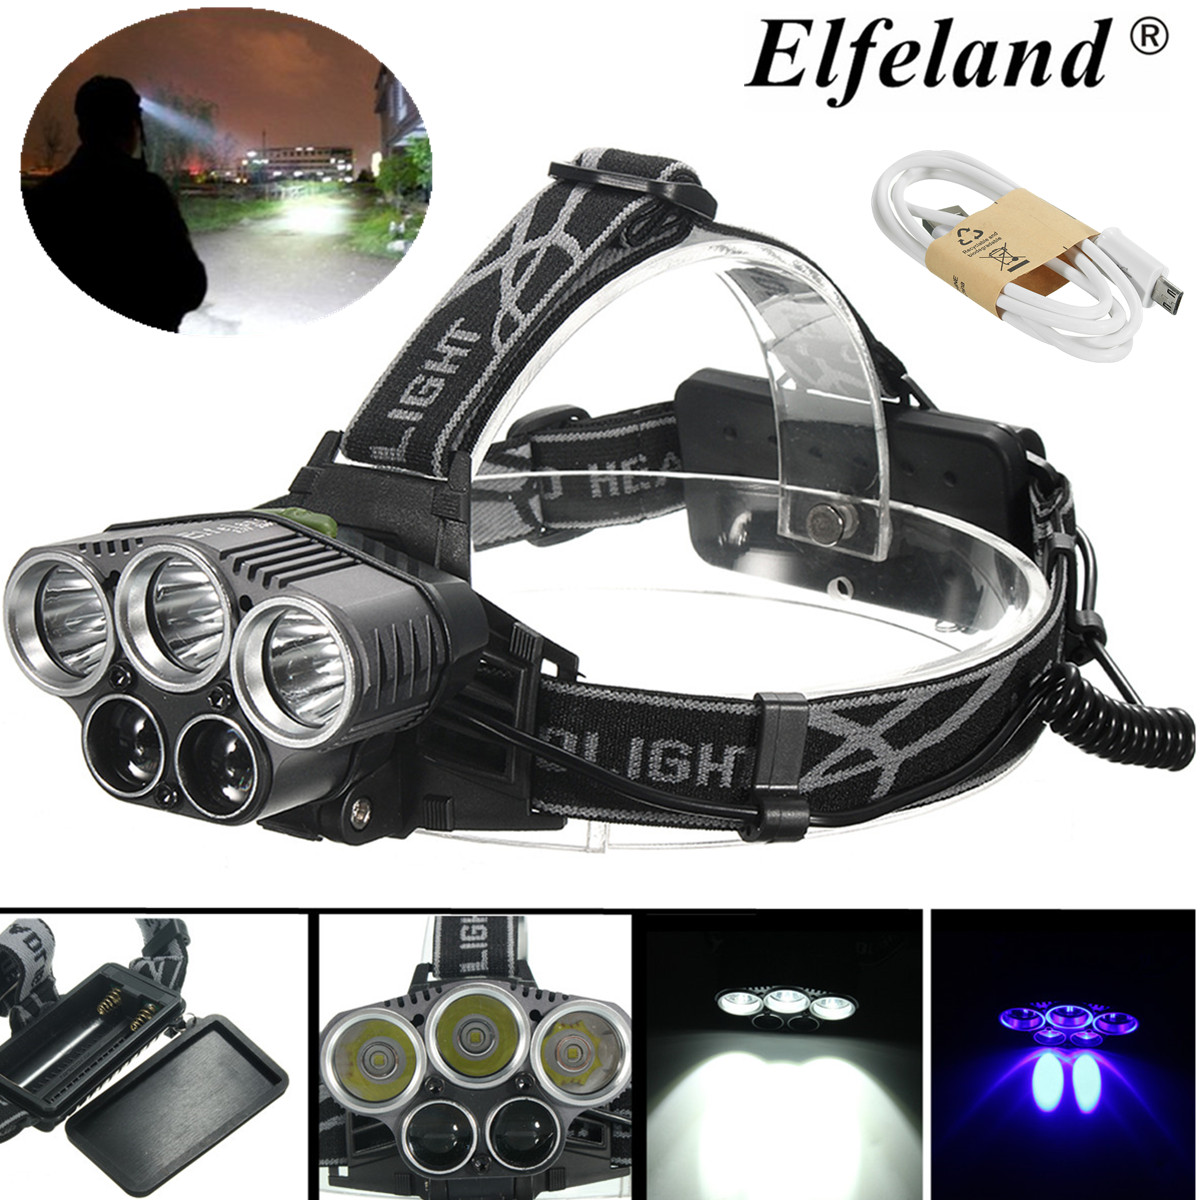 6000LM 5x T6 LED Rechargerable Headlight Headlamp Head Torch Light Lamp with USB Cable Headlights & Lights 5Modes for Outdoor Camping Bicycle